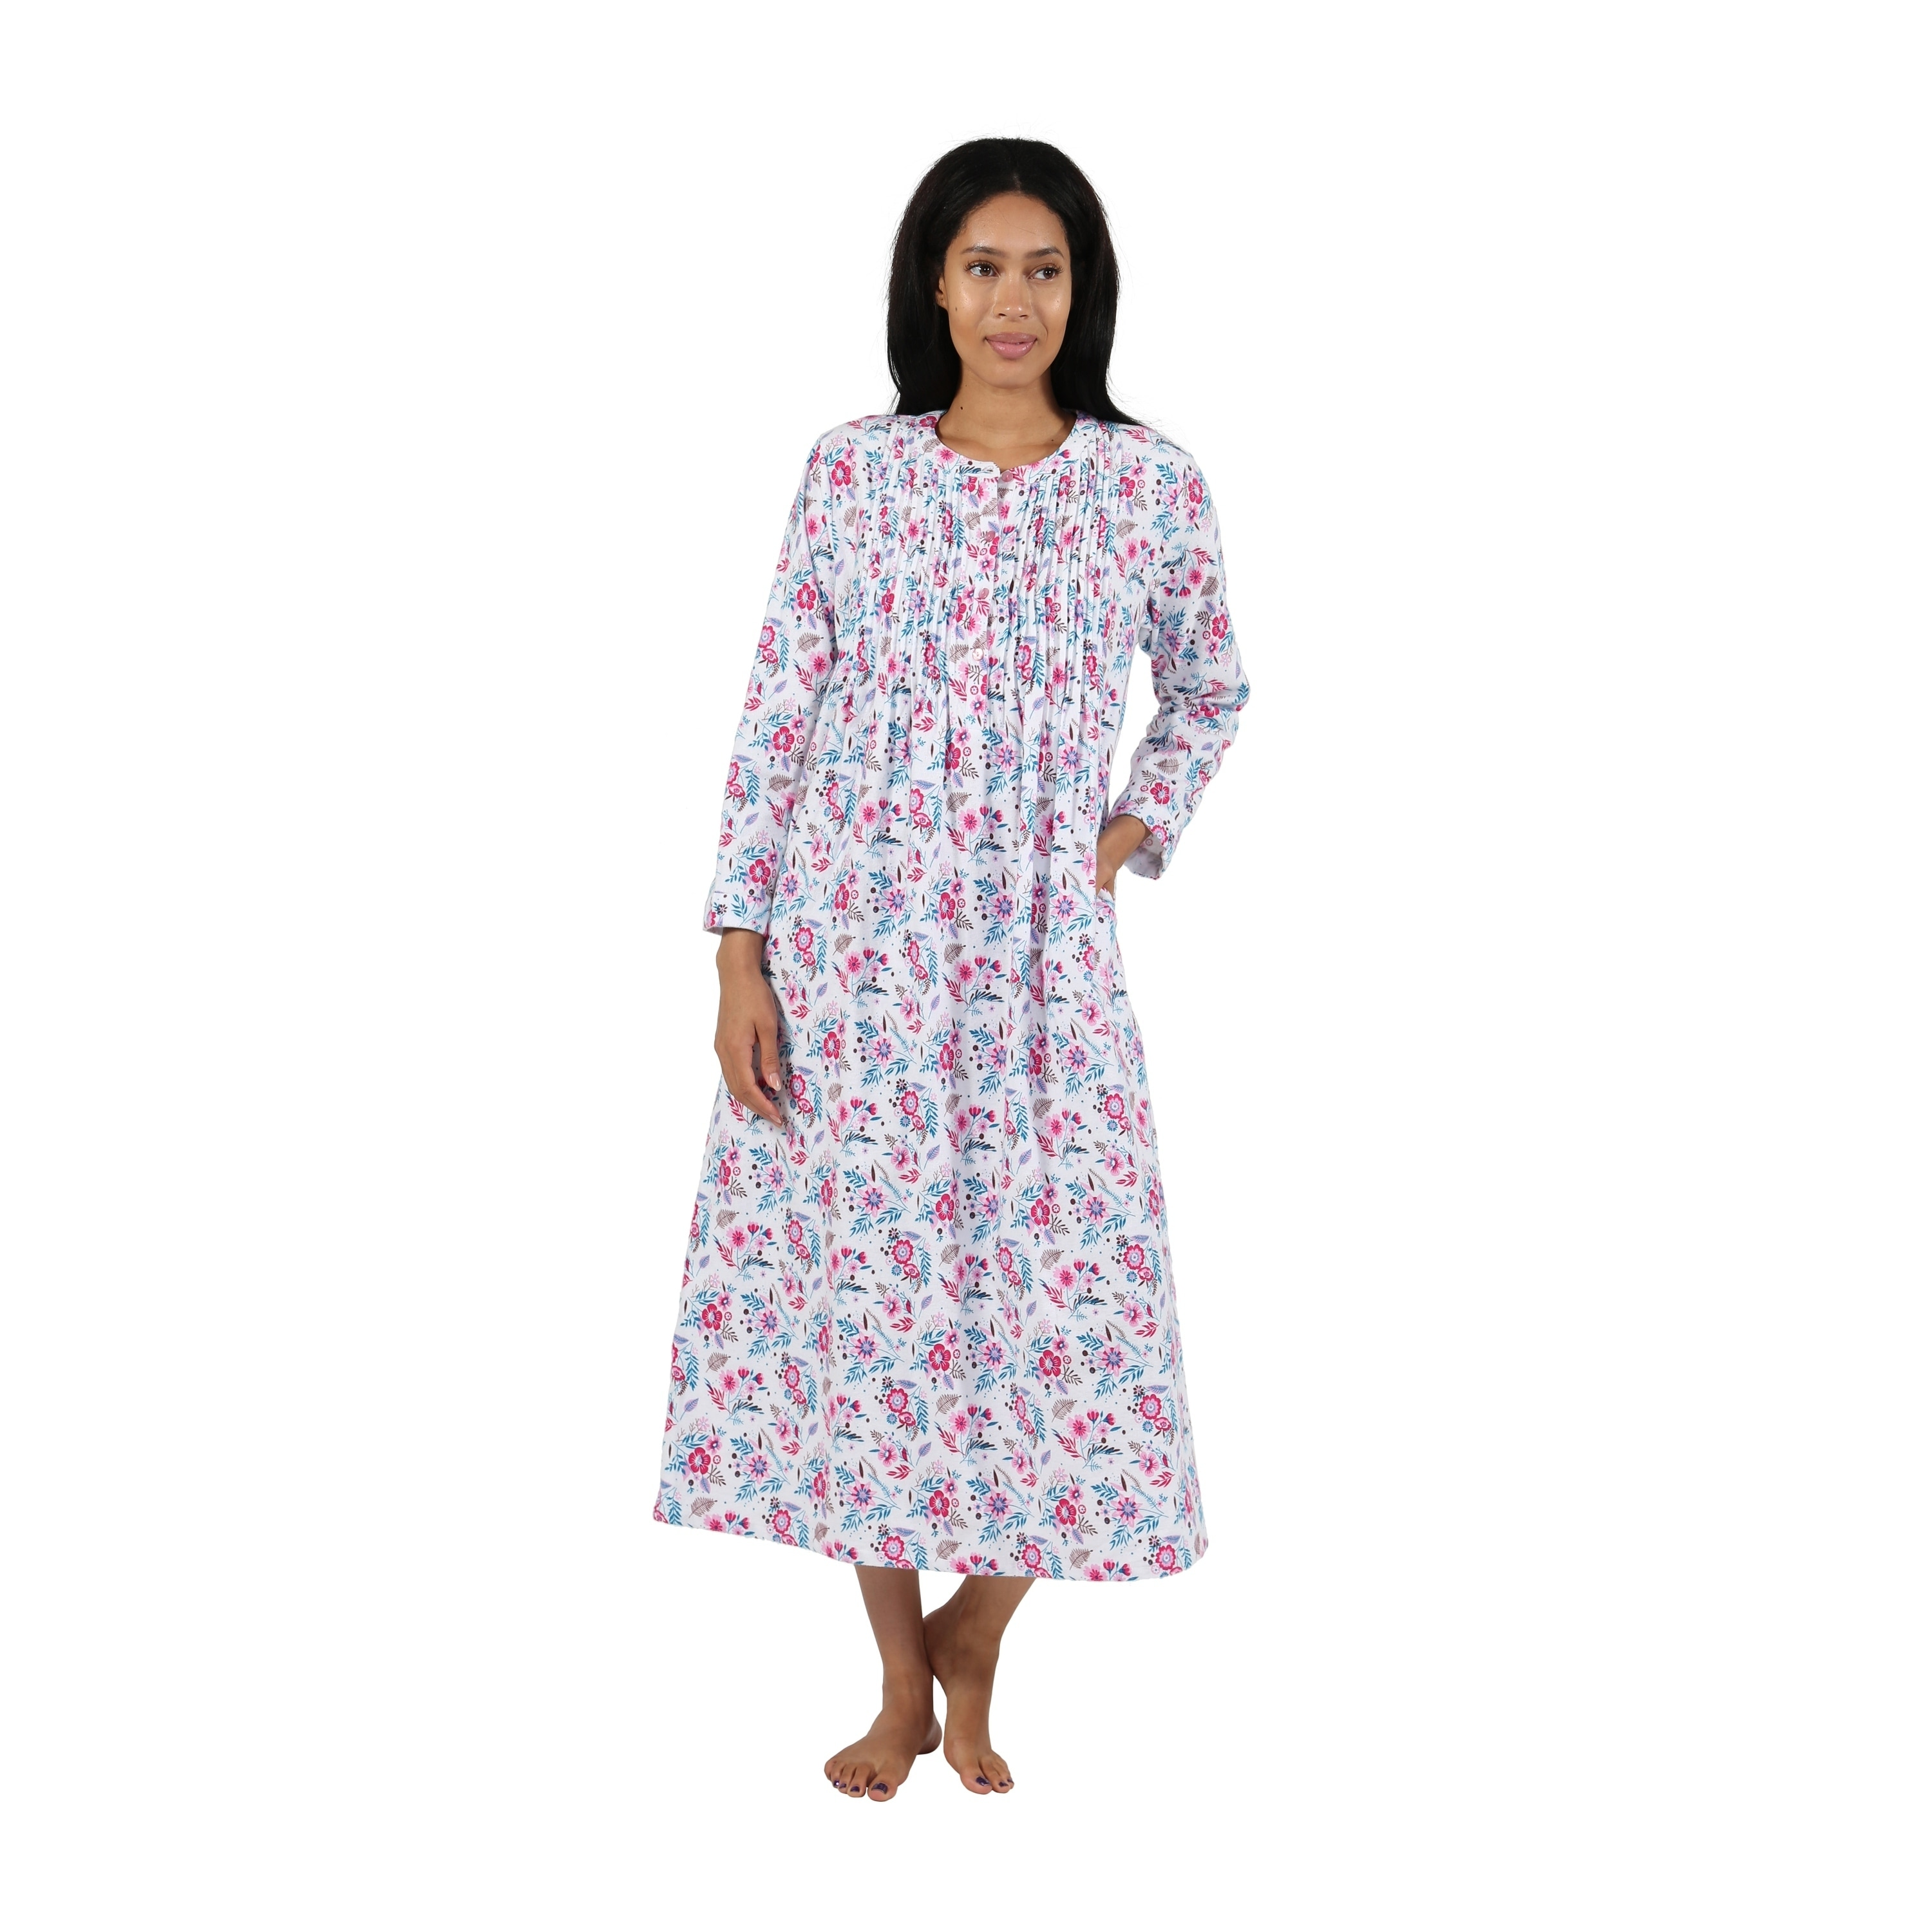 888a68545115e5 Long Sleeve Silk Sleep Shirt – EDGE Engineering and Consulting Limited